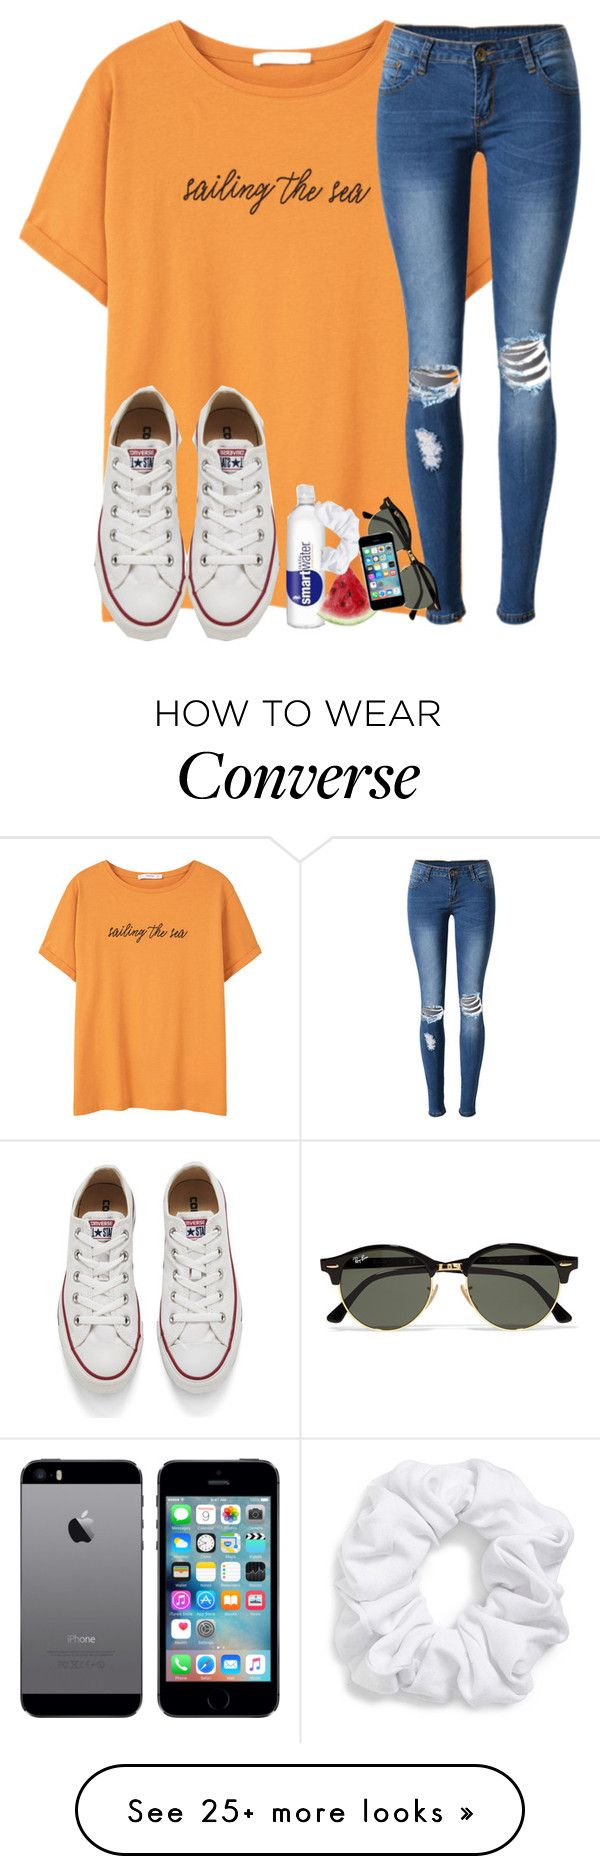 """qotd: what was your high and low today?"" by madiweeksss on Polyvore featuring MANGO, WithChic, Converse, Ray-Ban and Natasha Couture"